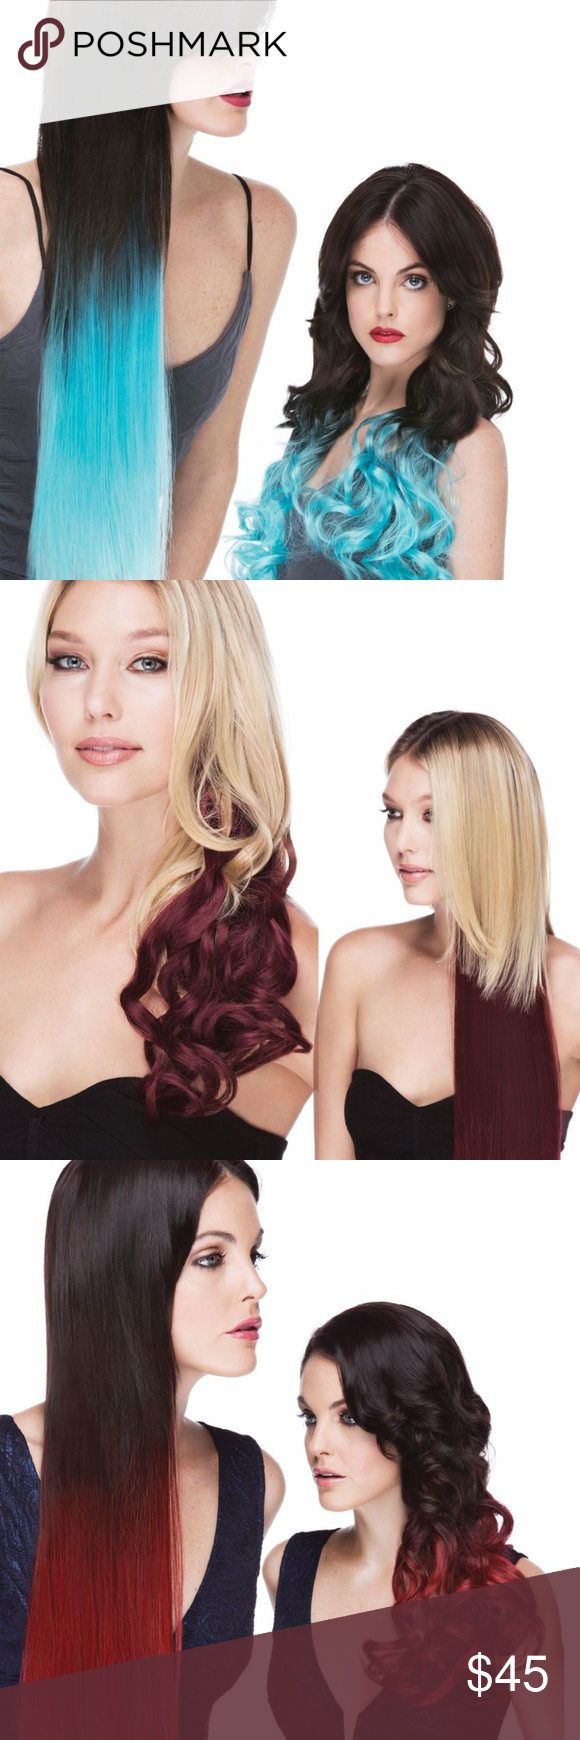 New Clip In Hair Extensions Ombre Party Colors Boutique Party